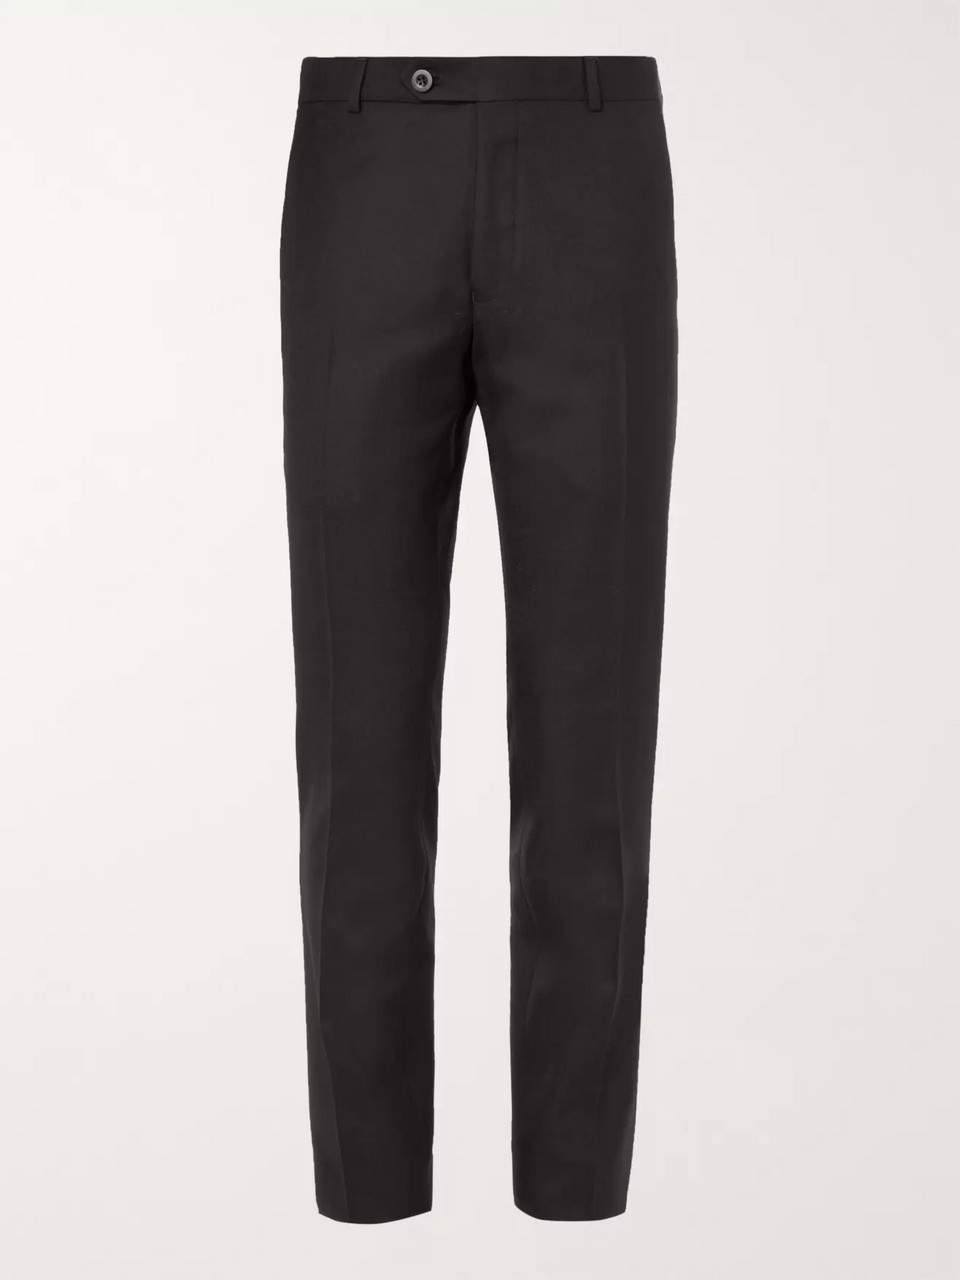 Mr P. Slim-Fit Grey Worsted Wool Trousers